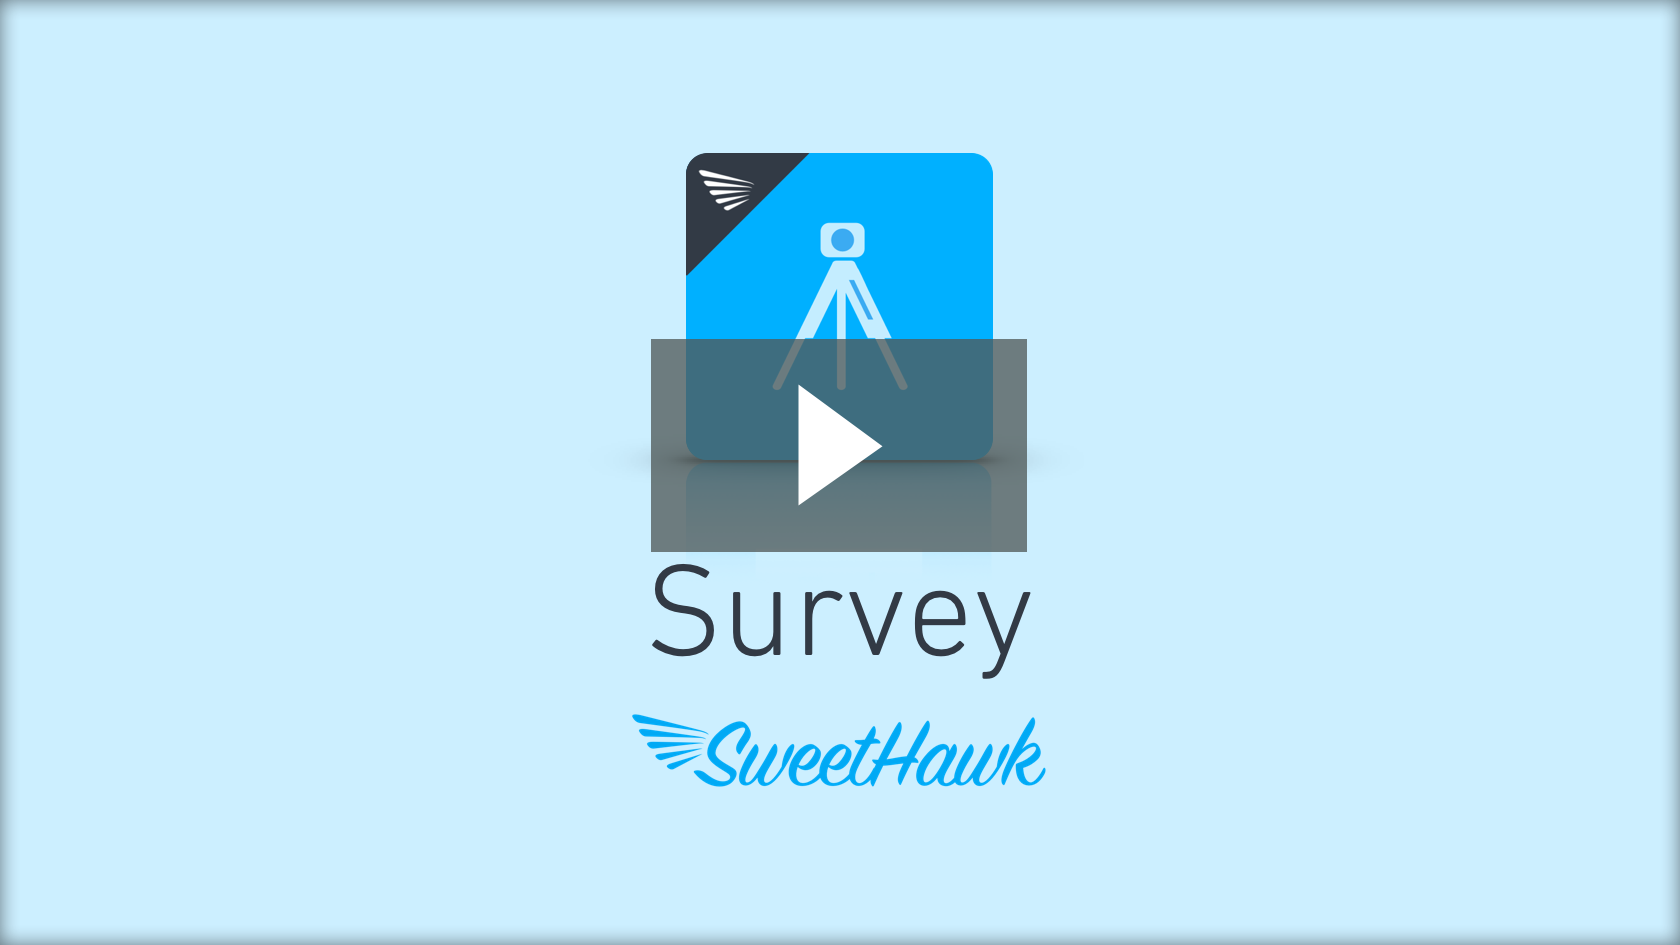 Watch the Survey app video